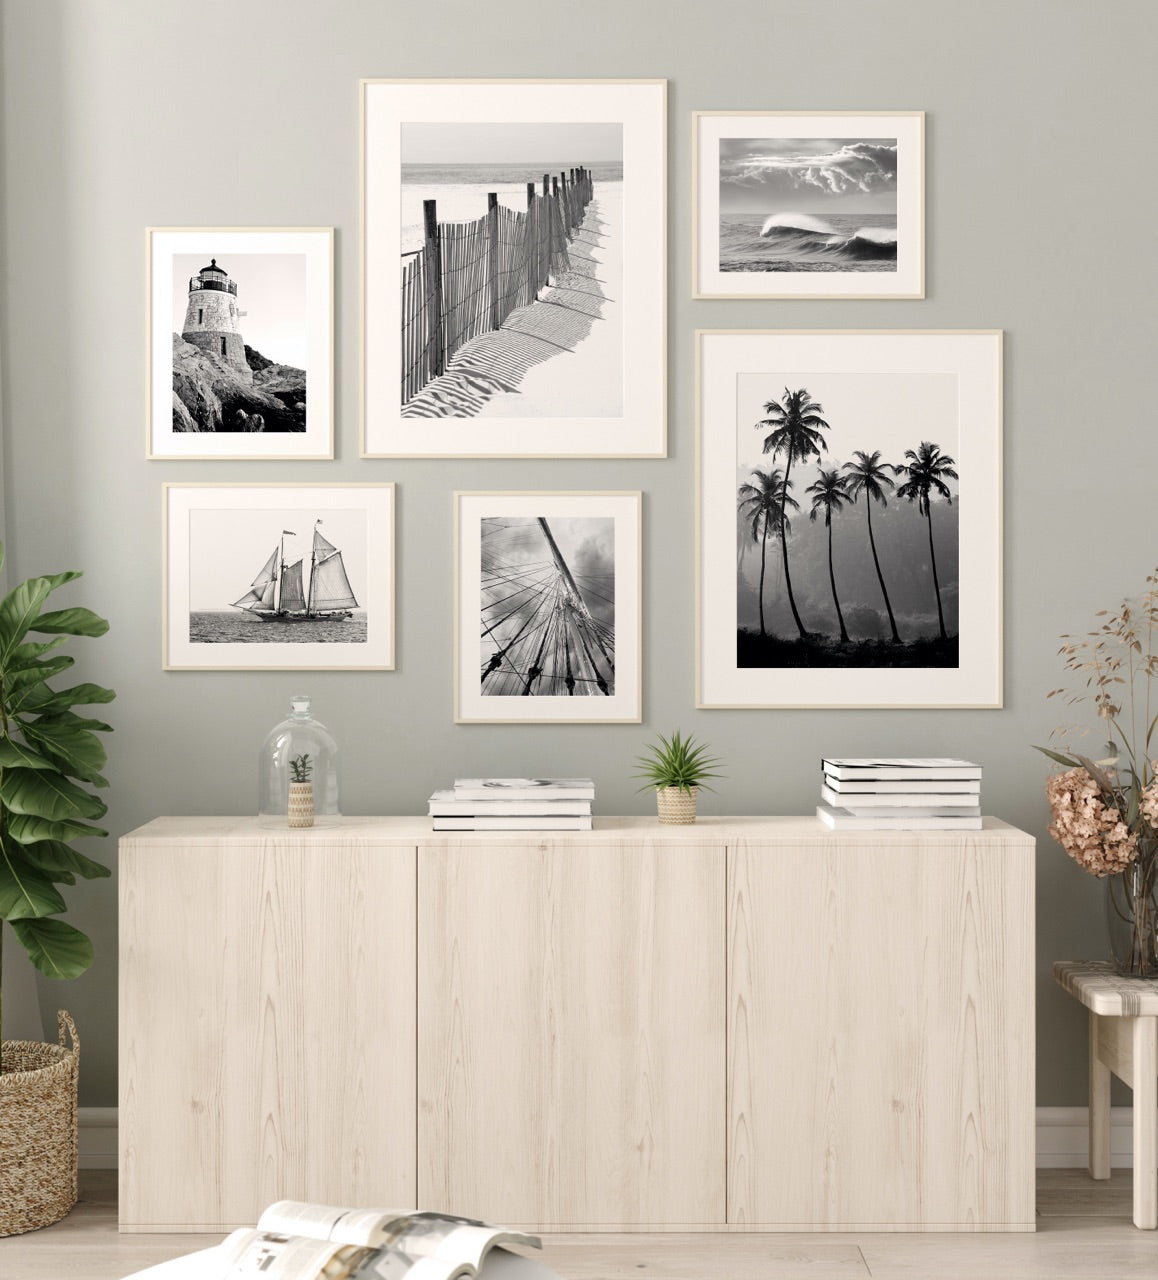 Gallery wall with framed black and white beach prints